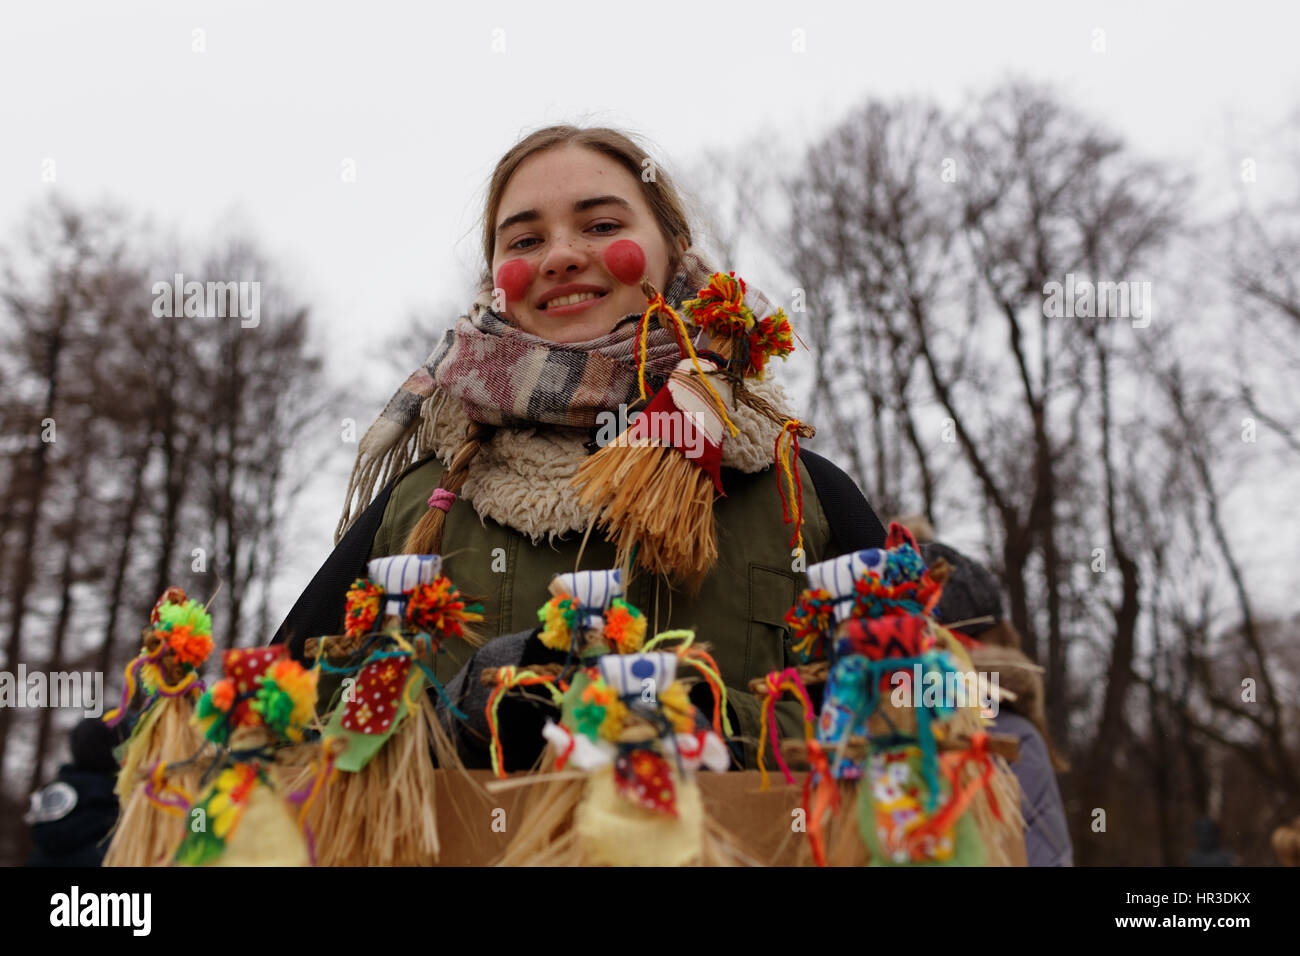 St. Petersburg, Russia, 26th February, 2017. Woman selling the effigies of Maslenitsa during Shrovetide celebrations Stock Photo